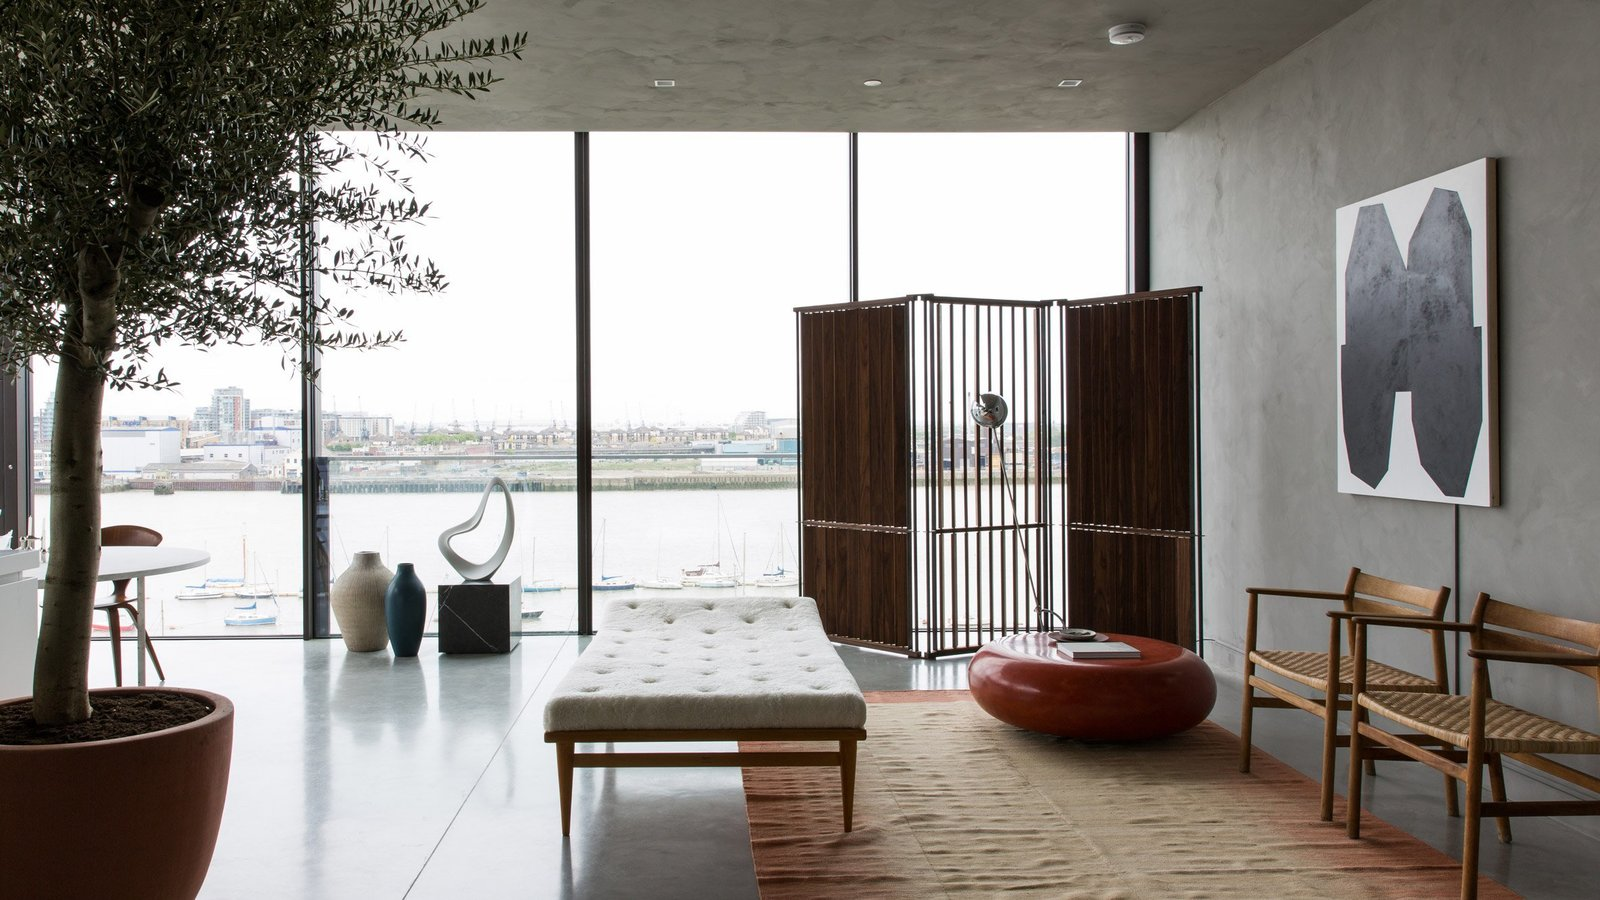 Tagged: Living Room, Chair, Recliner, Recessed Lighting, and Concrete Floor. For Just Under $2 Million, You Could Live in a London Penthouse Outfitted by Cereal Magazine - Photo 5 of 13